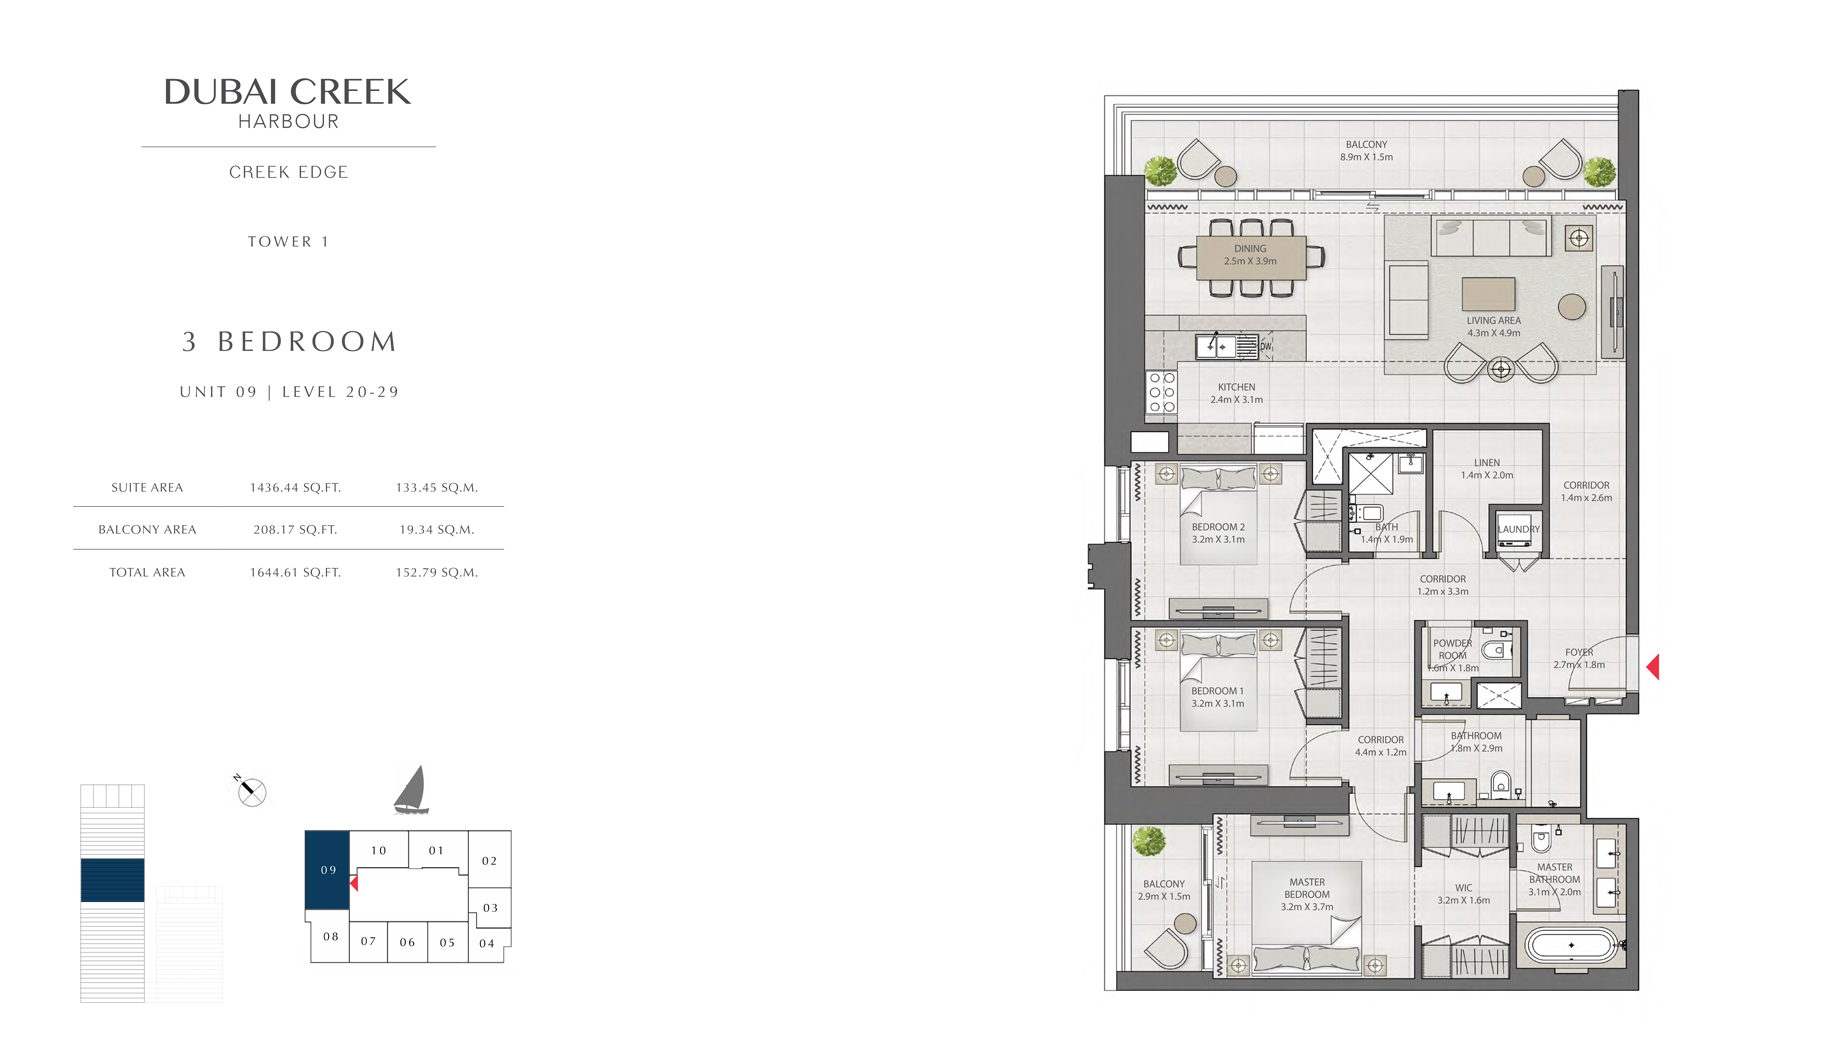 2 Bedroom Tower 1 Unit 09 Level 20-29 Size 1644 sq.ft